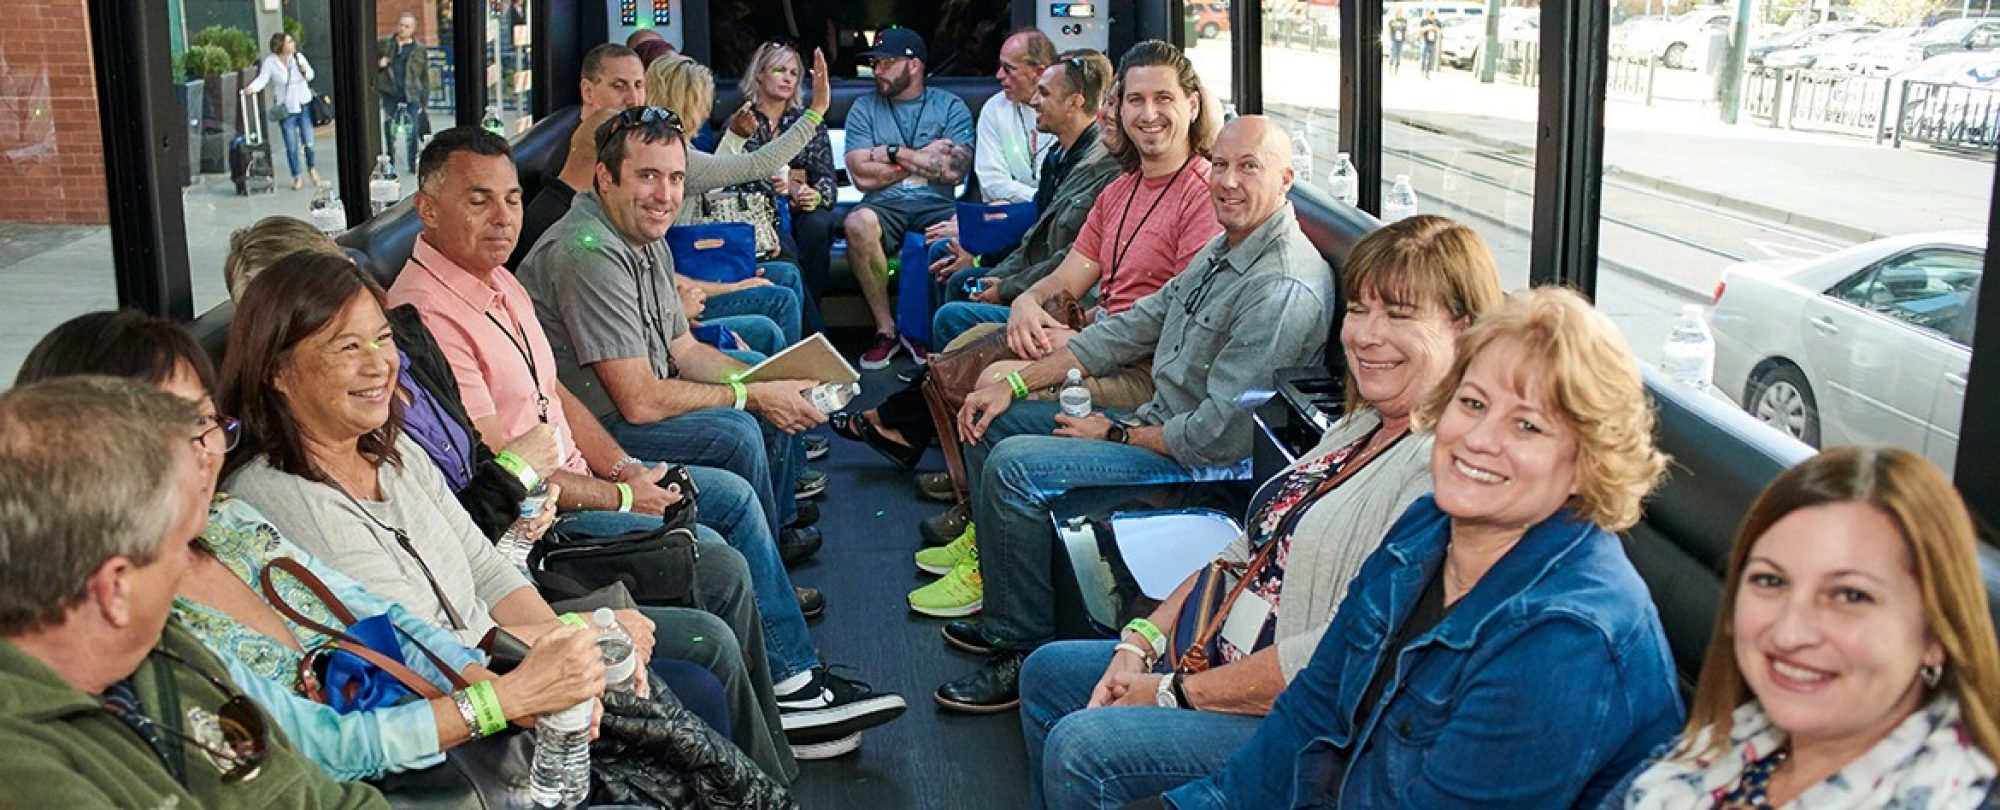 A group of participants sitting on the bus going to the event.